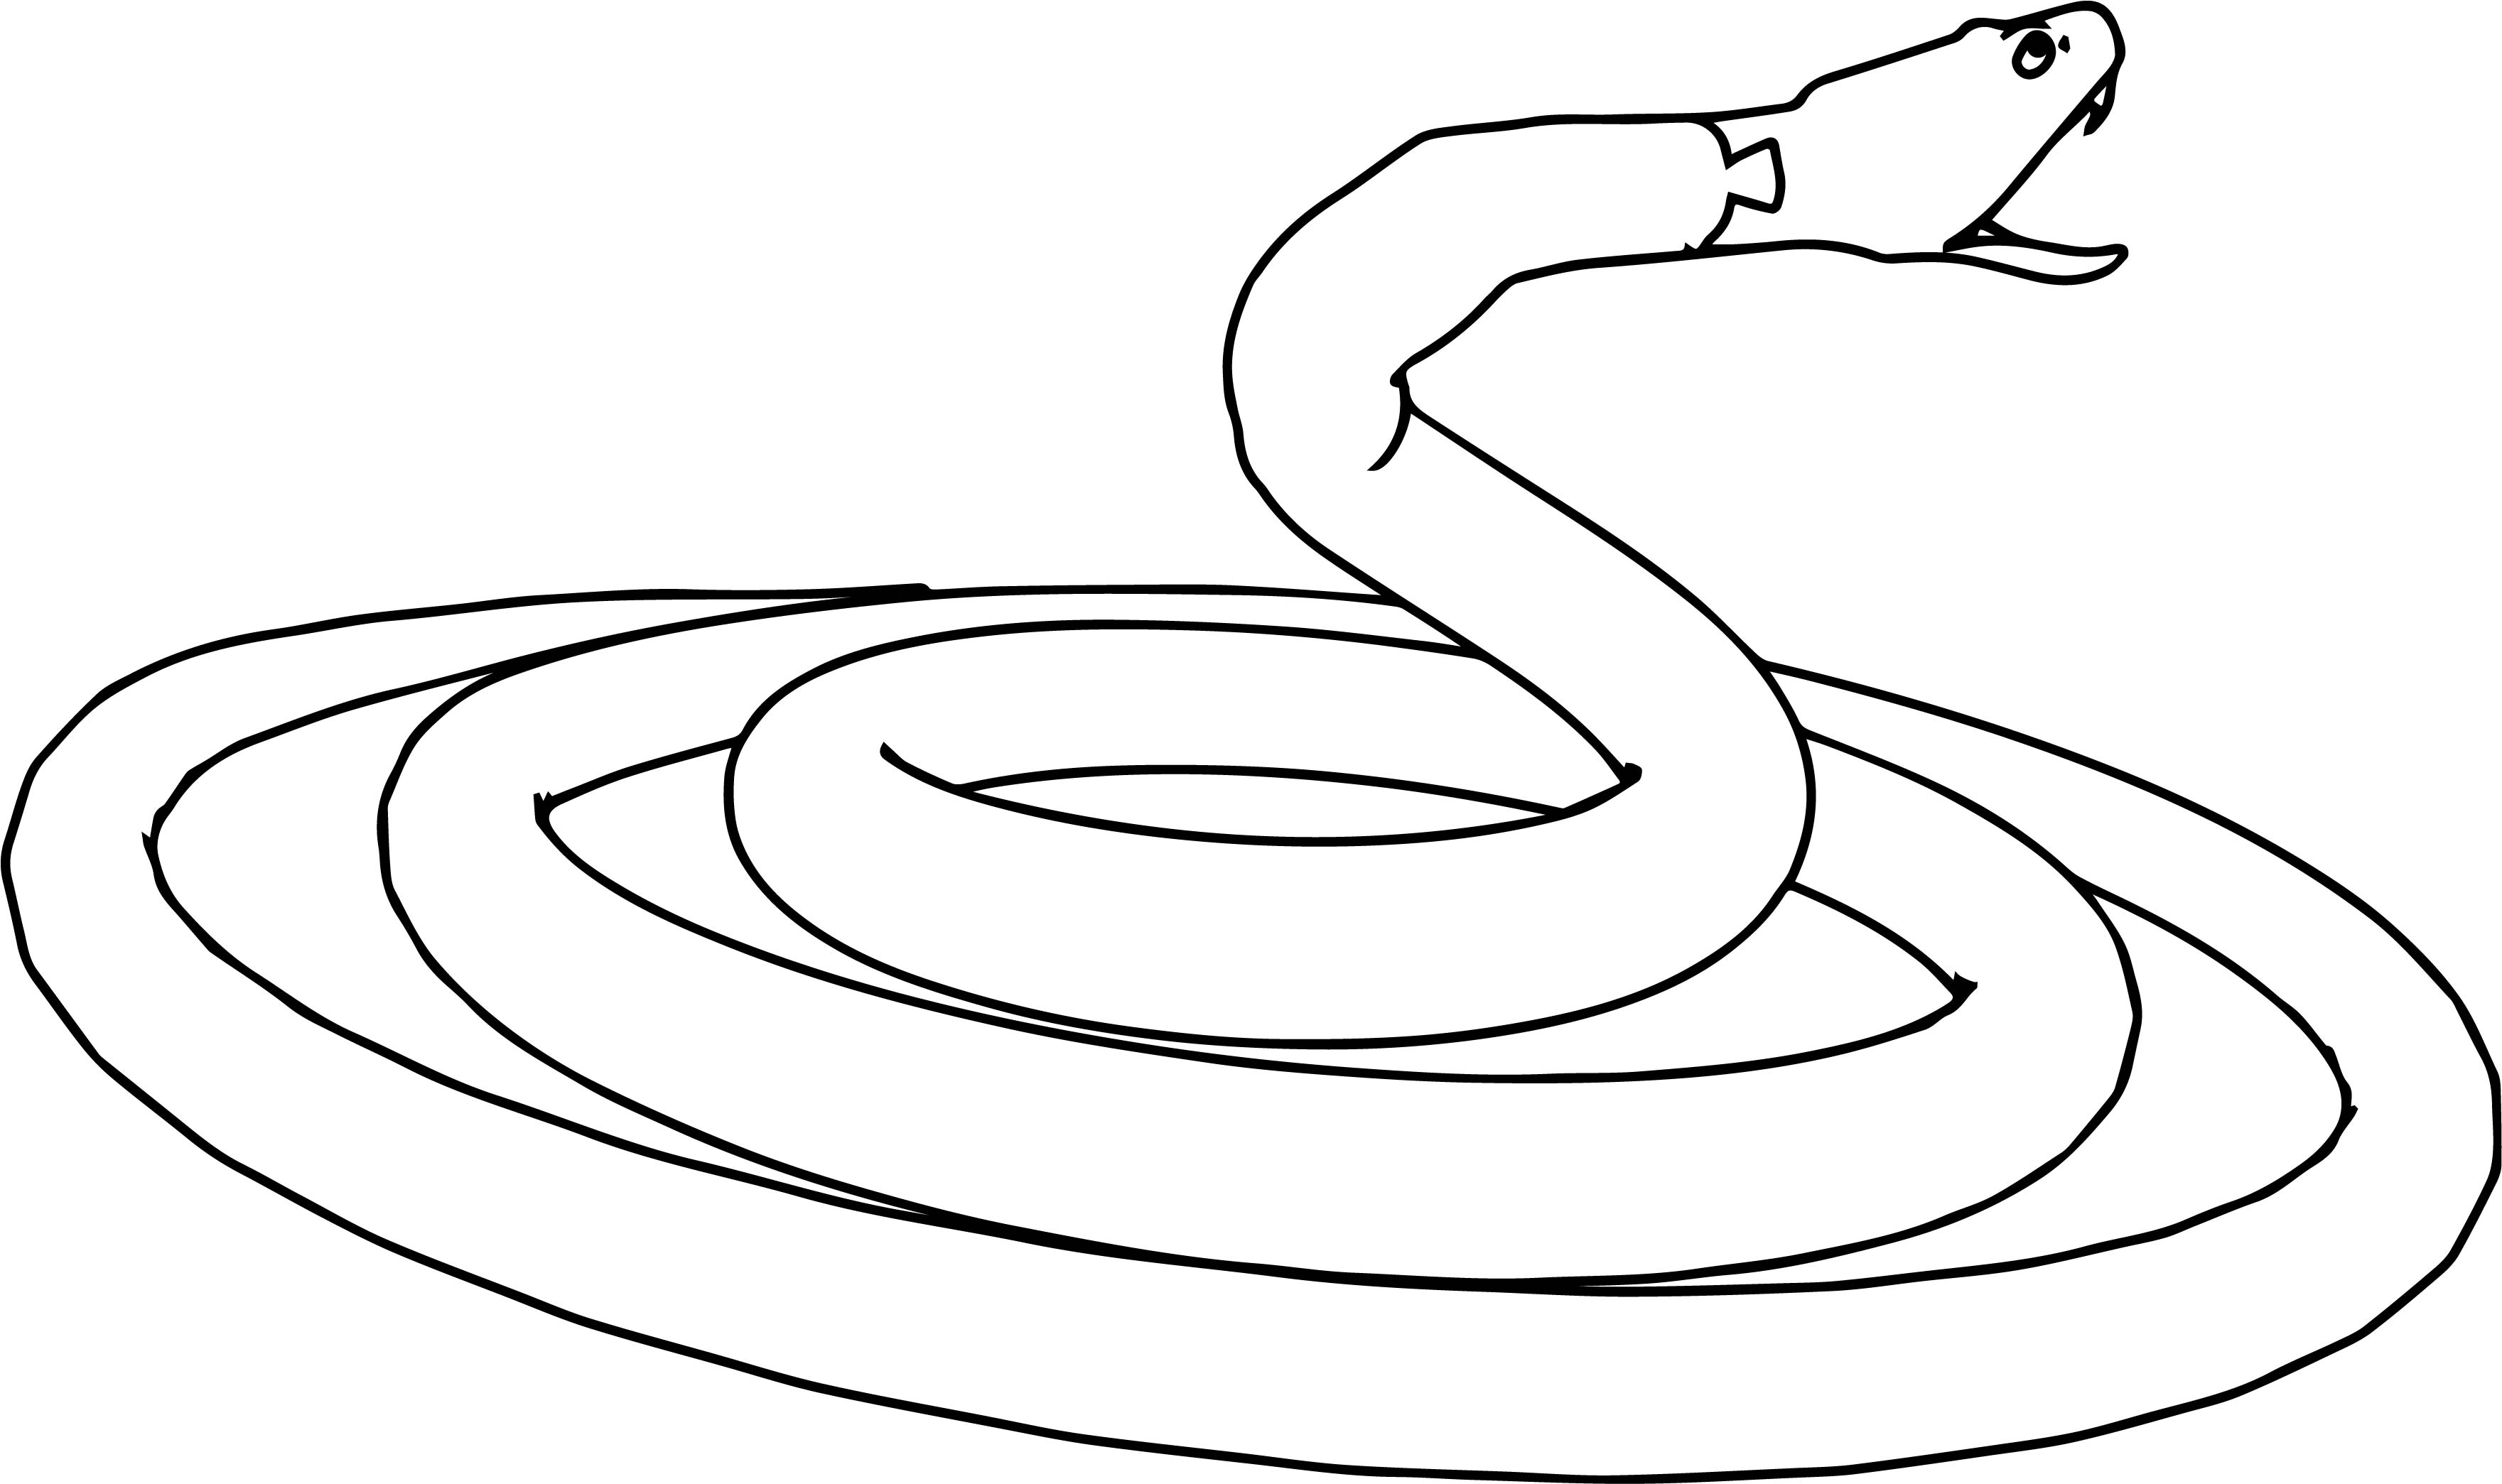 Snake Coloring Pages Top 25 Free Printable Snake Coloring Pages ...